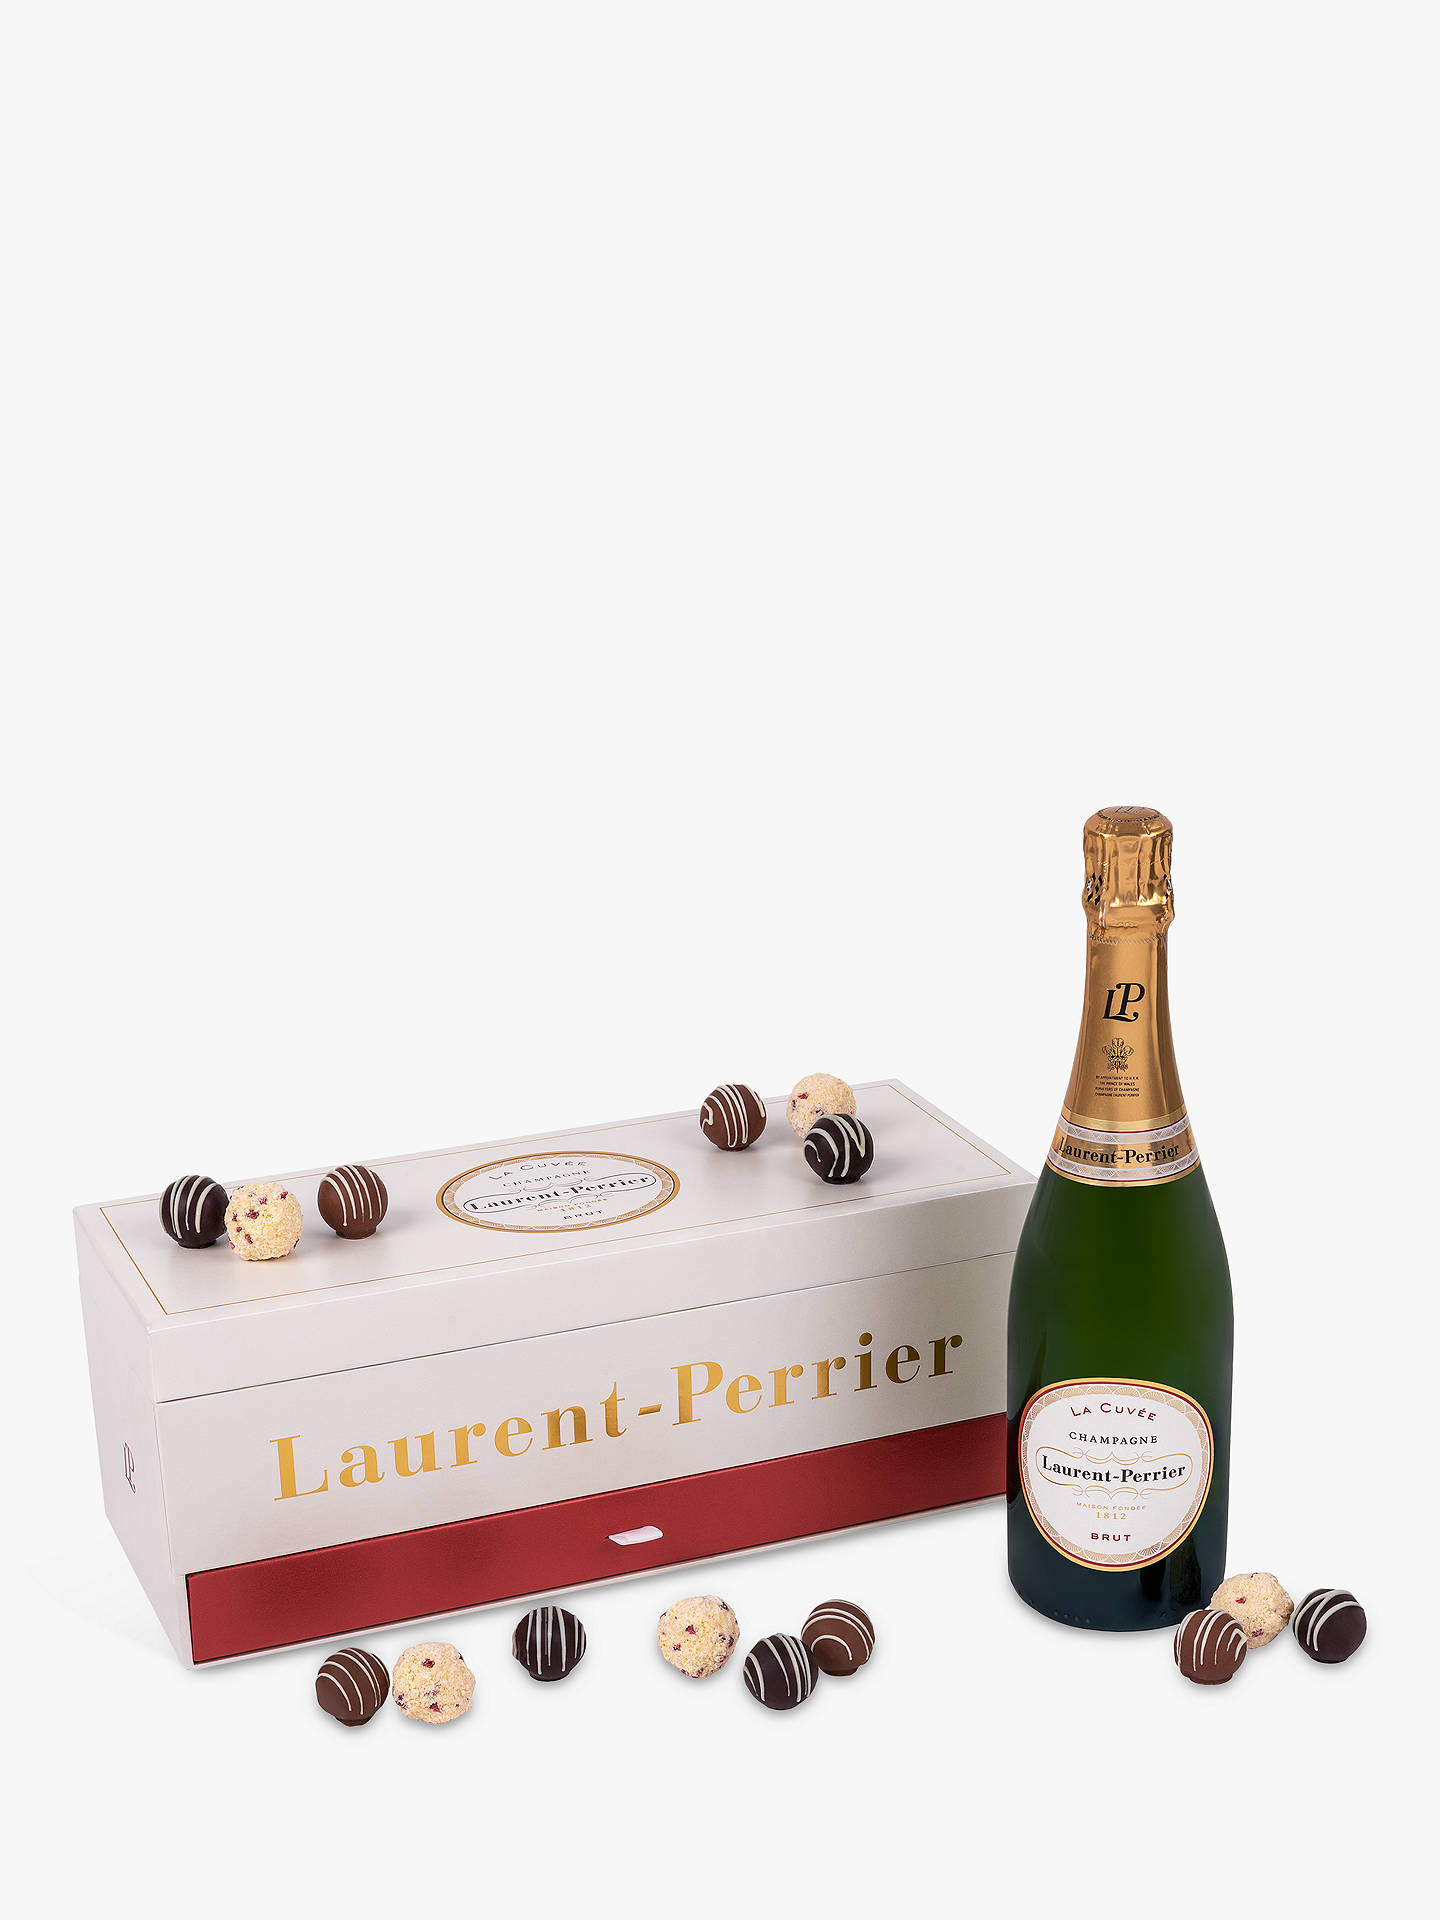 BuyLaurent-Perrier Brut Champagne and Montezuma's Truffle Set, 75cl Online at johnlewis.com